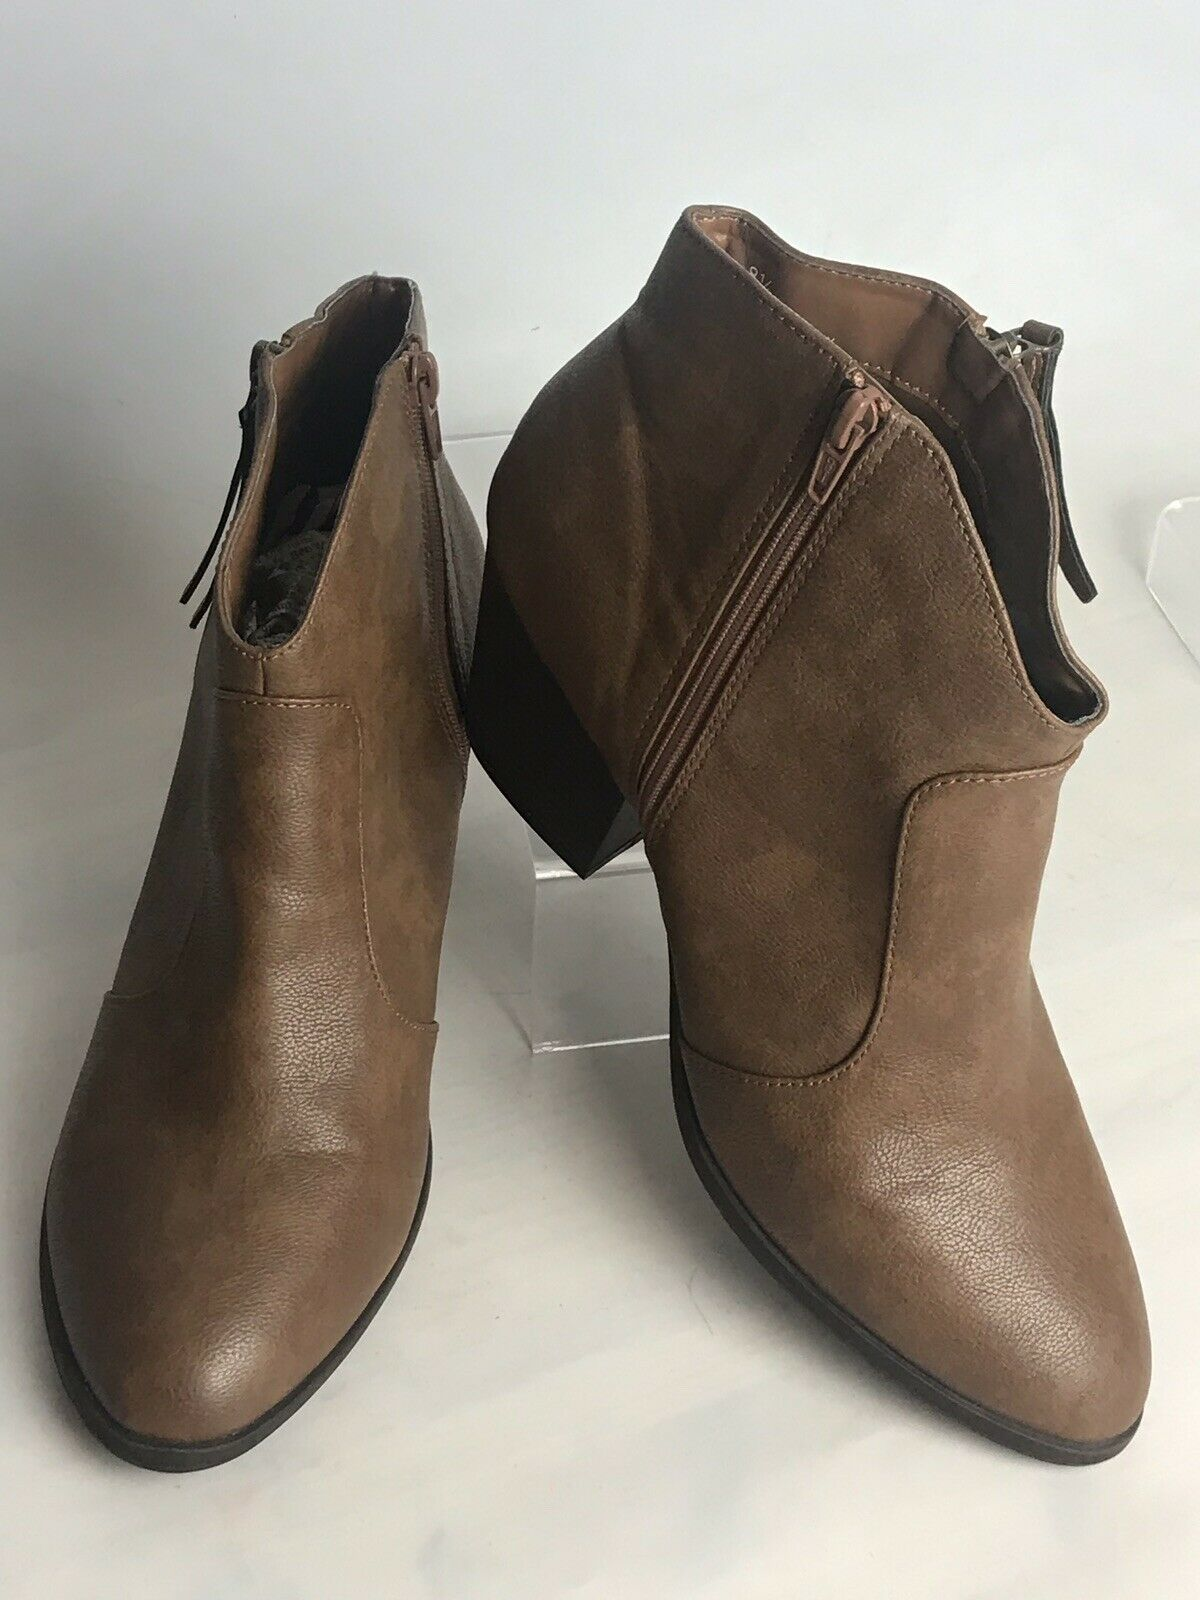 M&S LIMITED EDITION INSOLIA BROWN ANKLE BOOTS,SIDE ZIPS,3.5INS HEELS UK 8.5